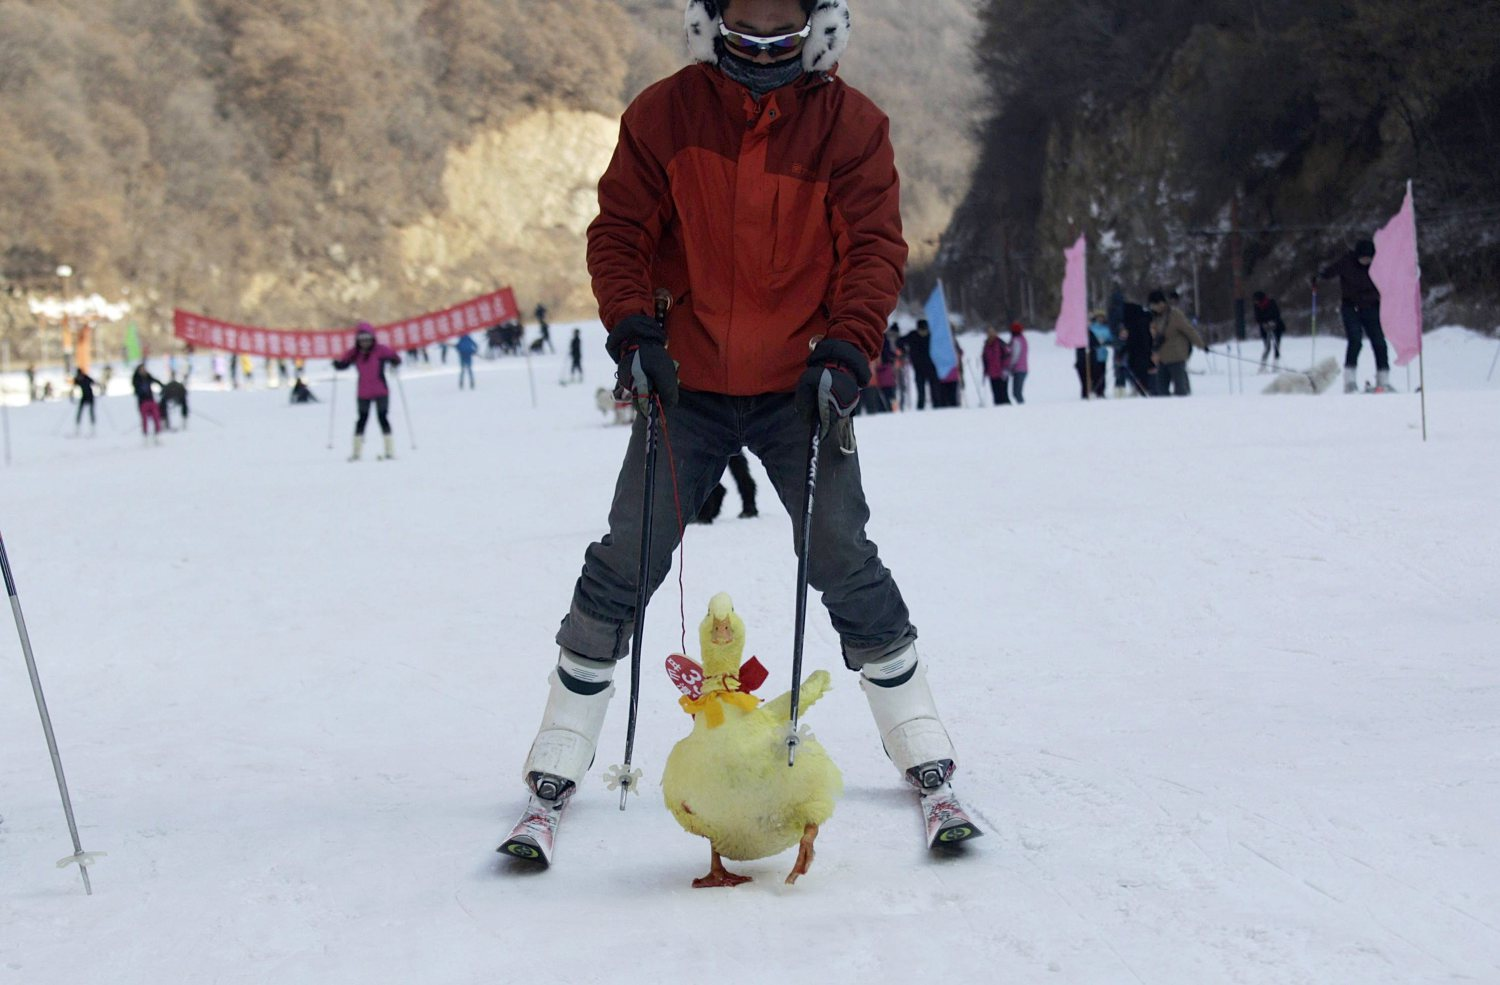 Skiing with a duck